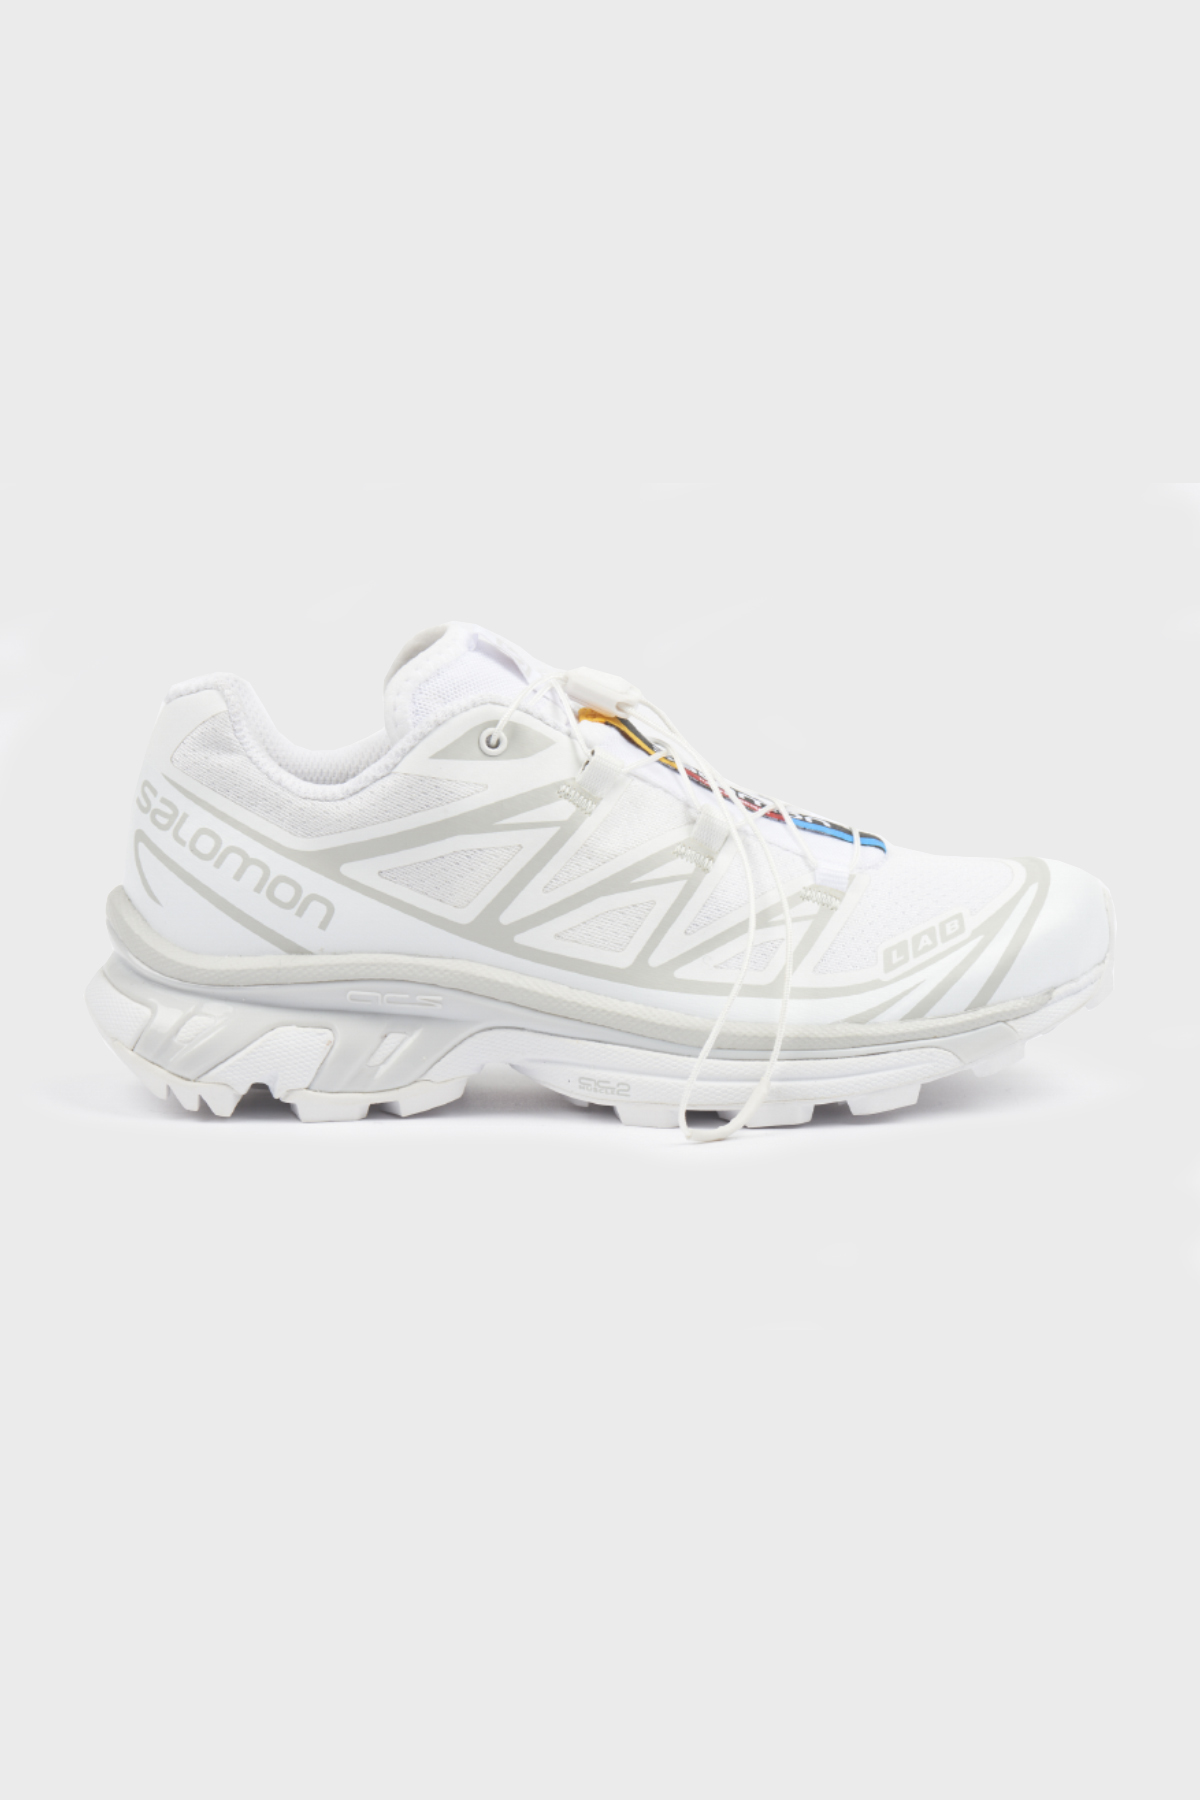 Salomon W - S/LAB XT-6 softground ADV LTD - White White Lunar Rock